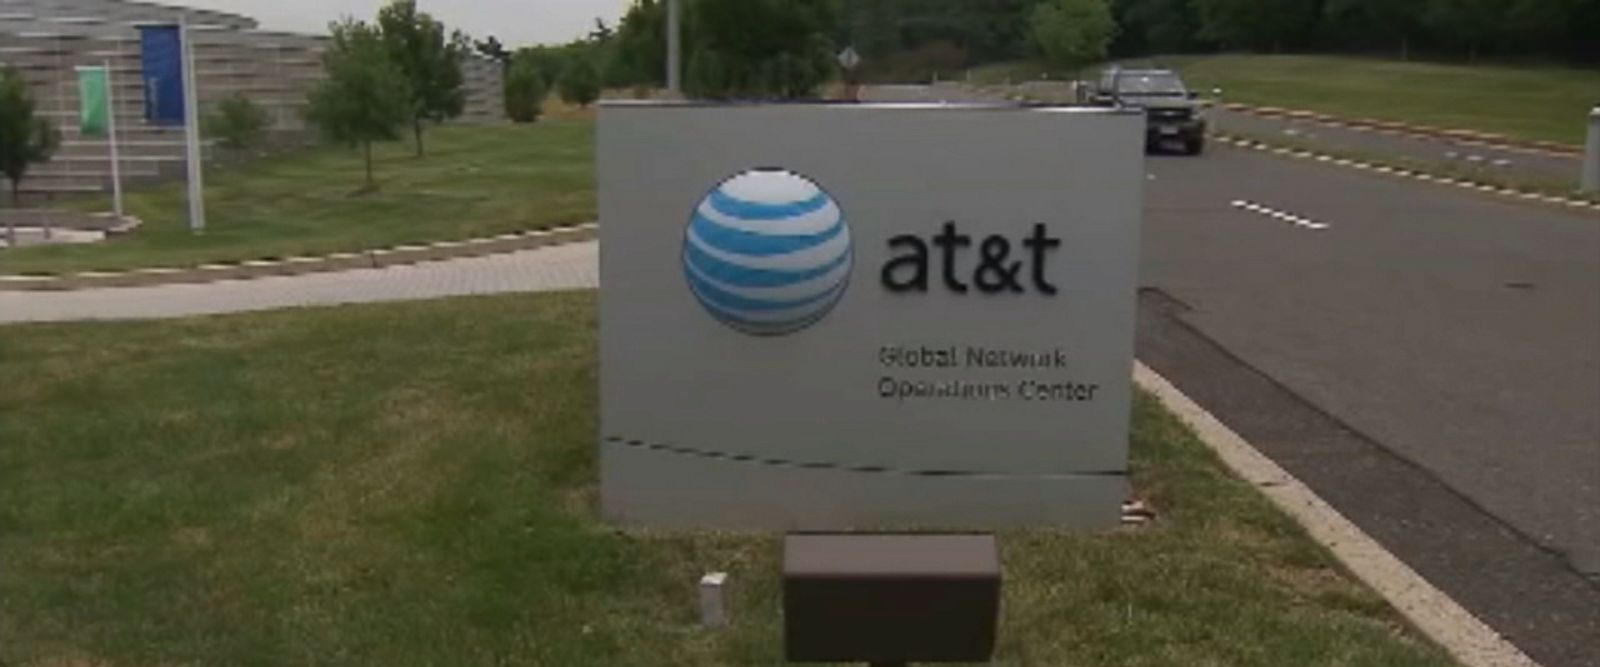 Previous negotiations between DOJ and AT&T have failed.